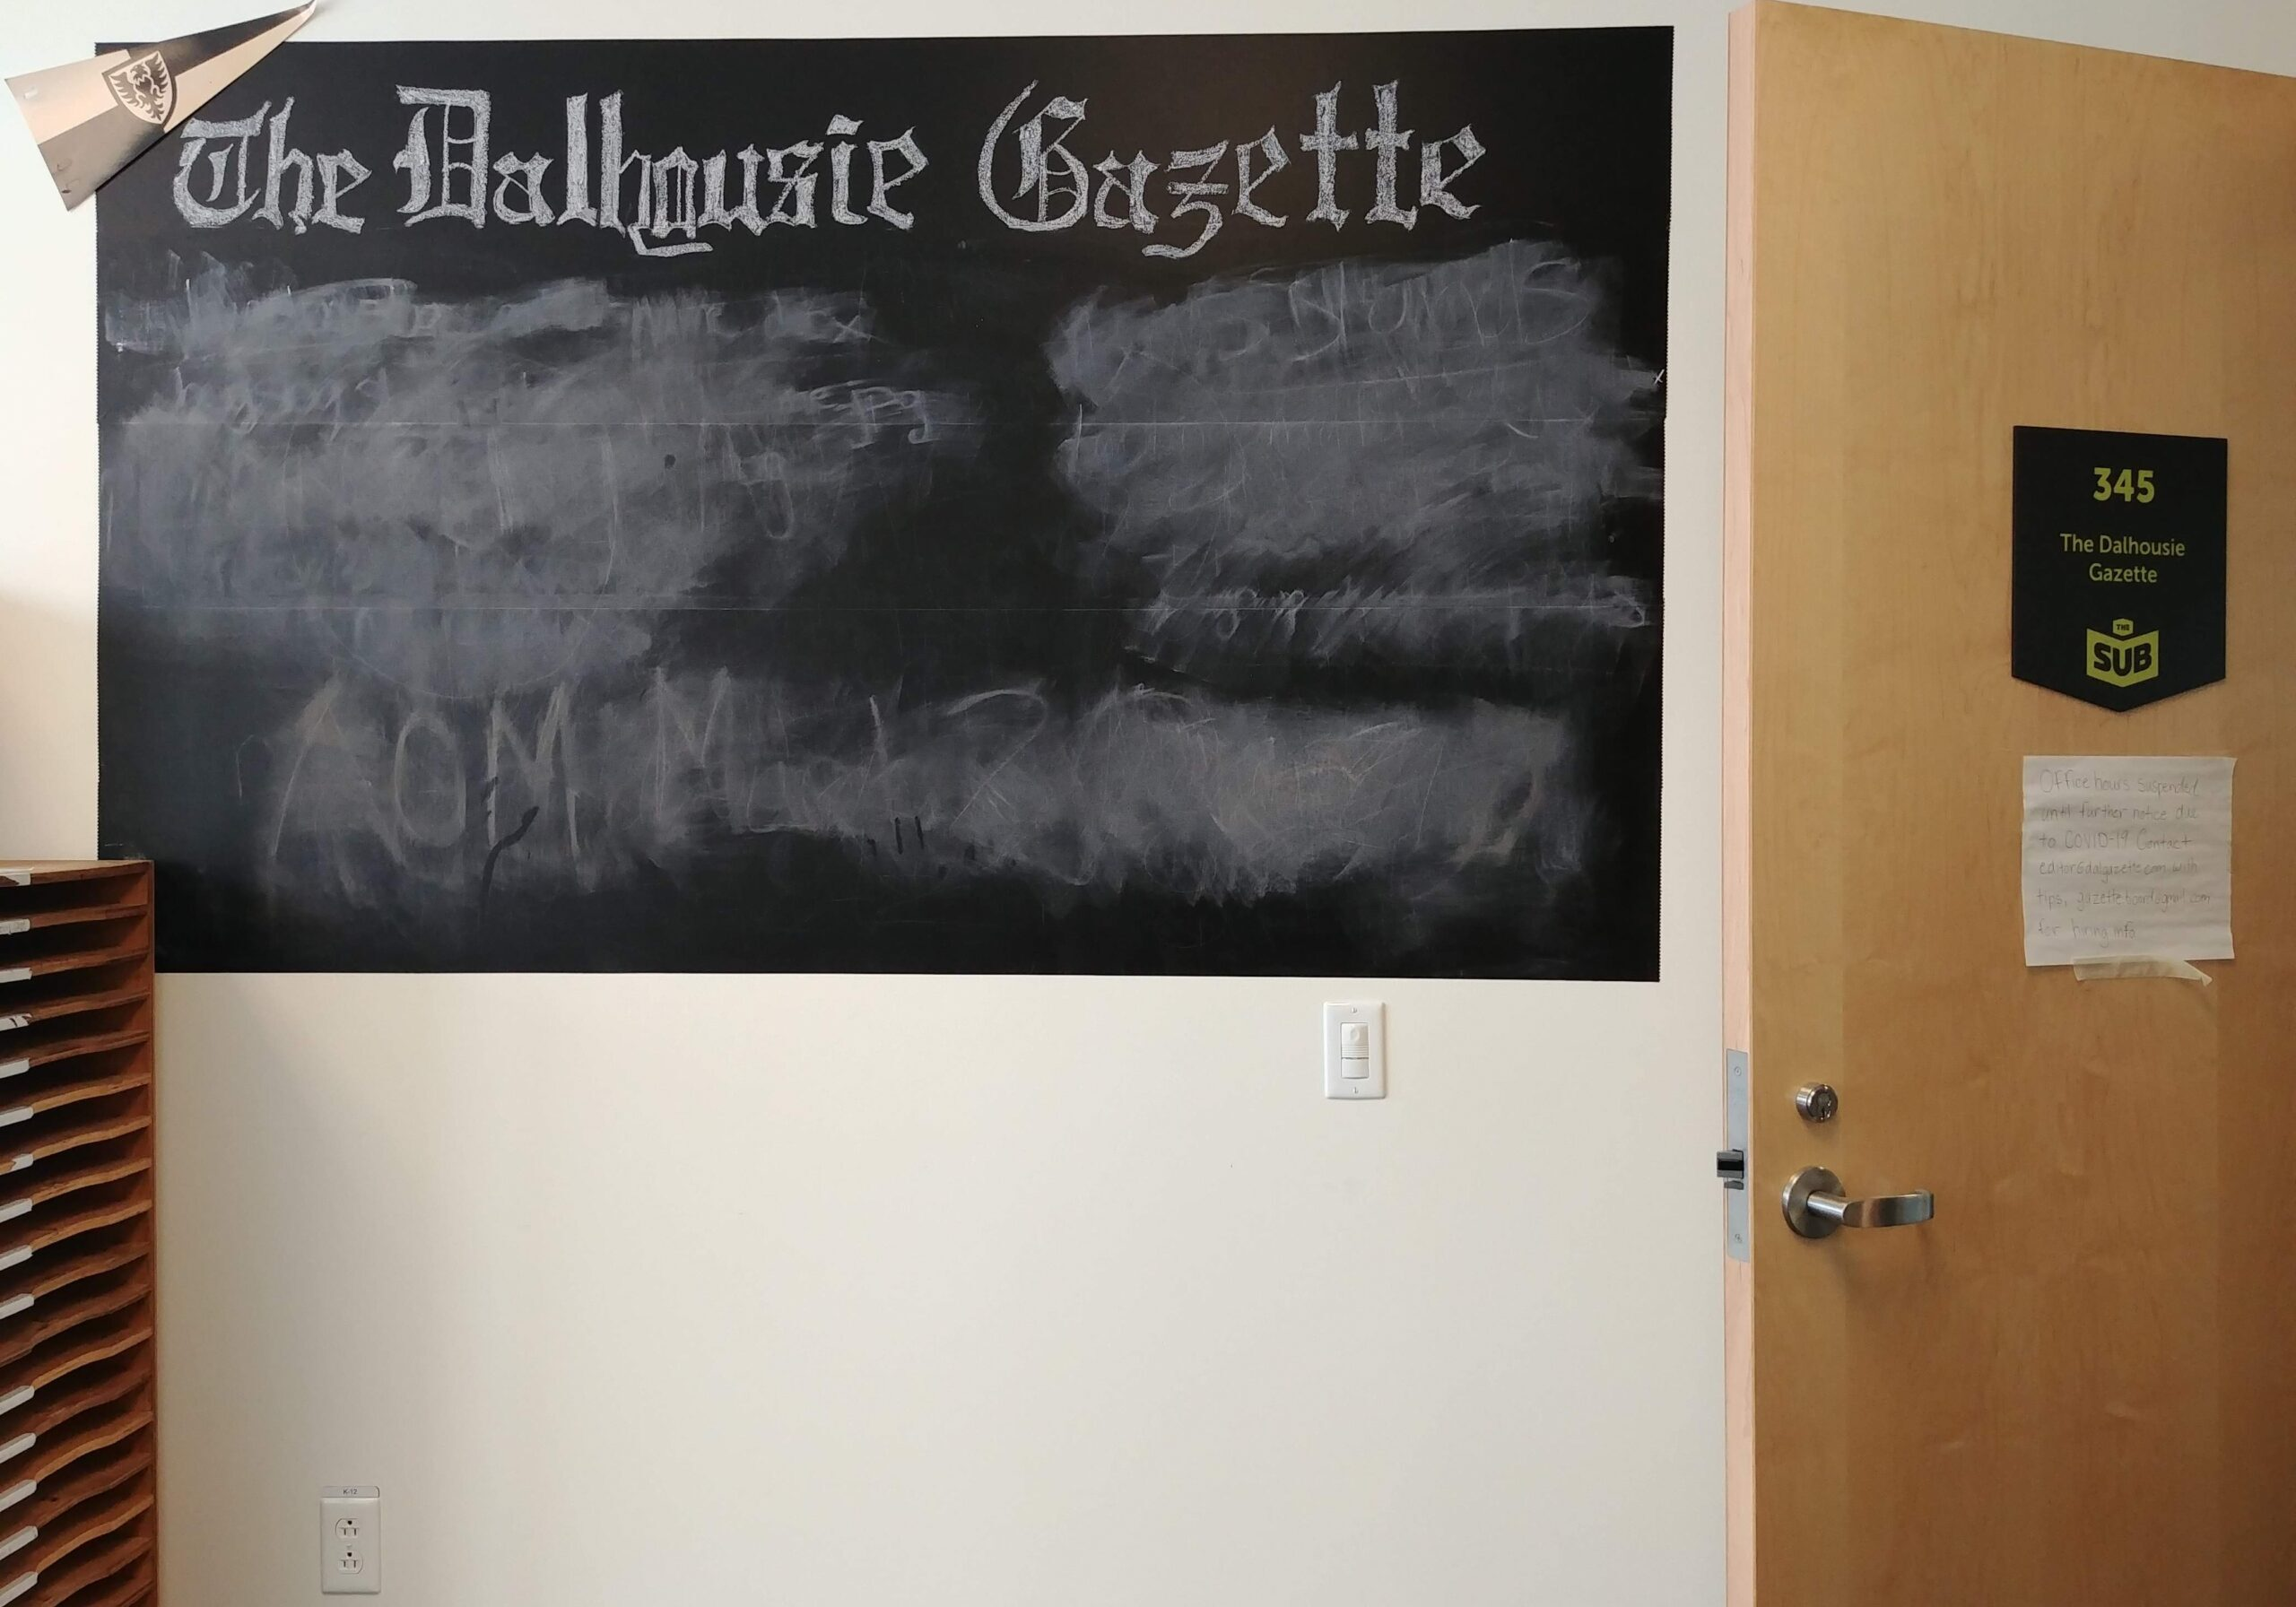 In this image: Dalhousie Gazette office